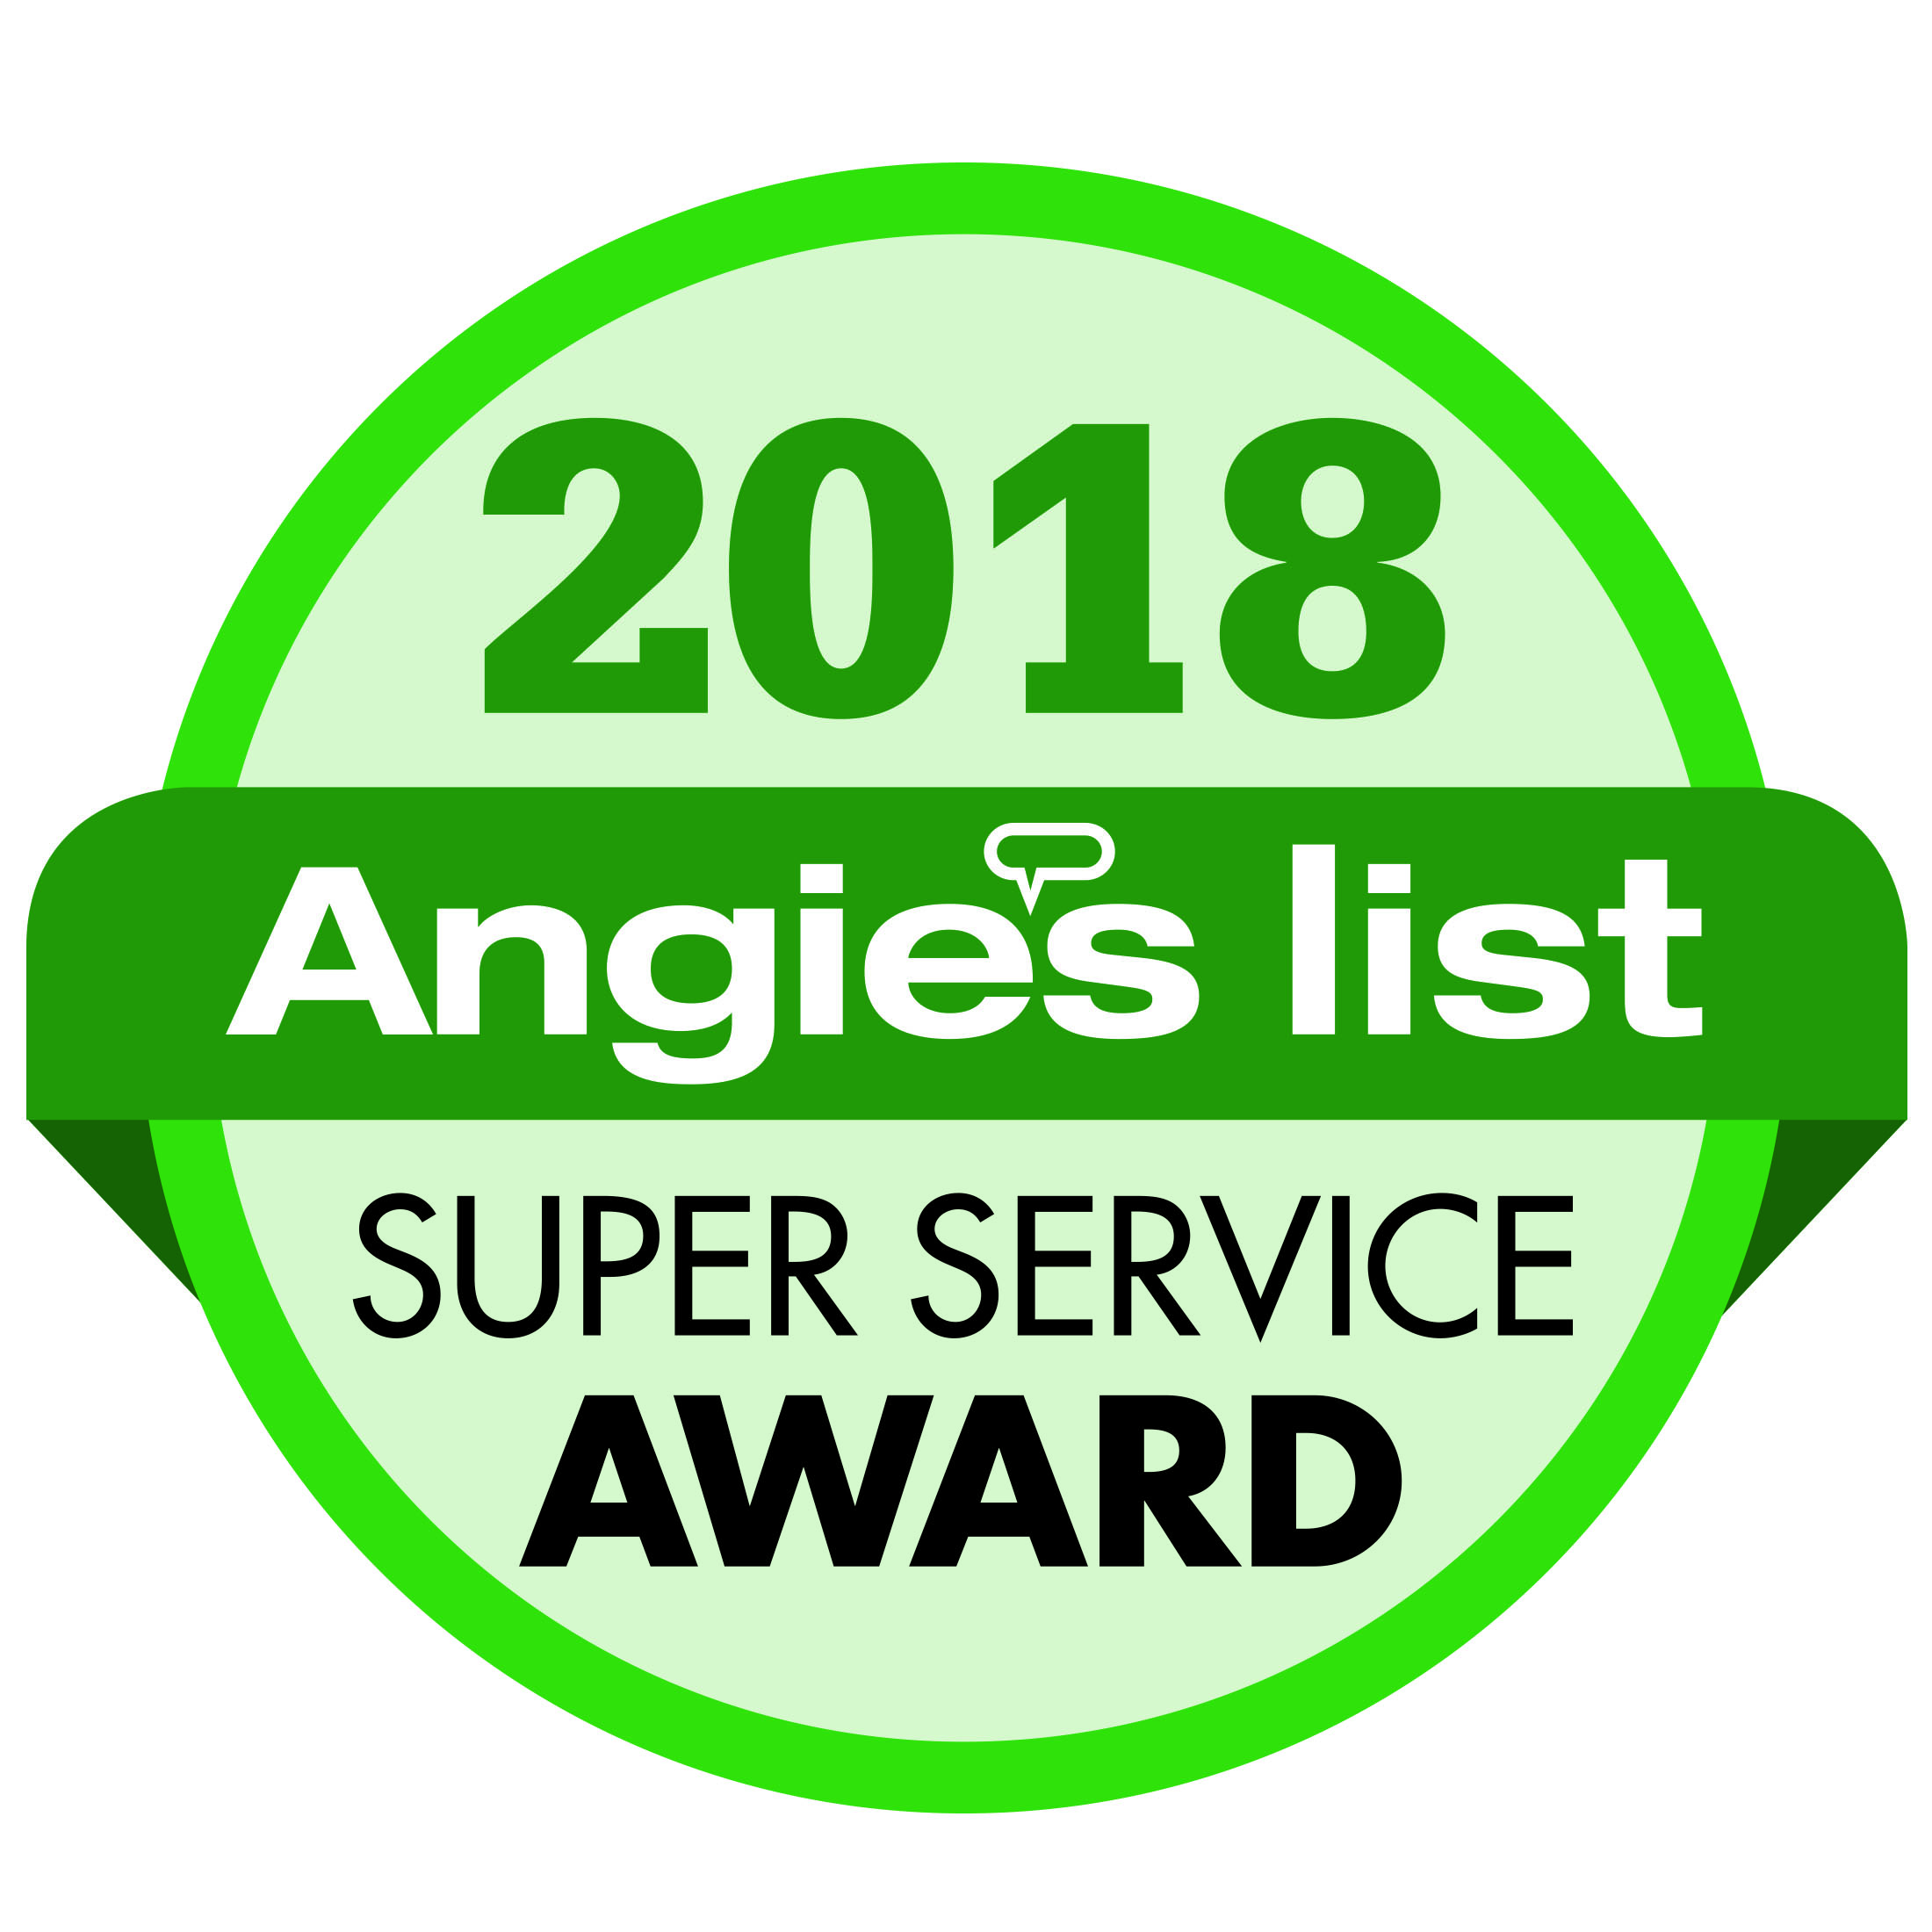 Angie's List Super Service Award: 2018